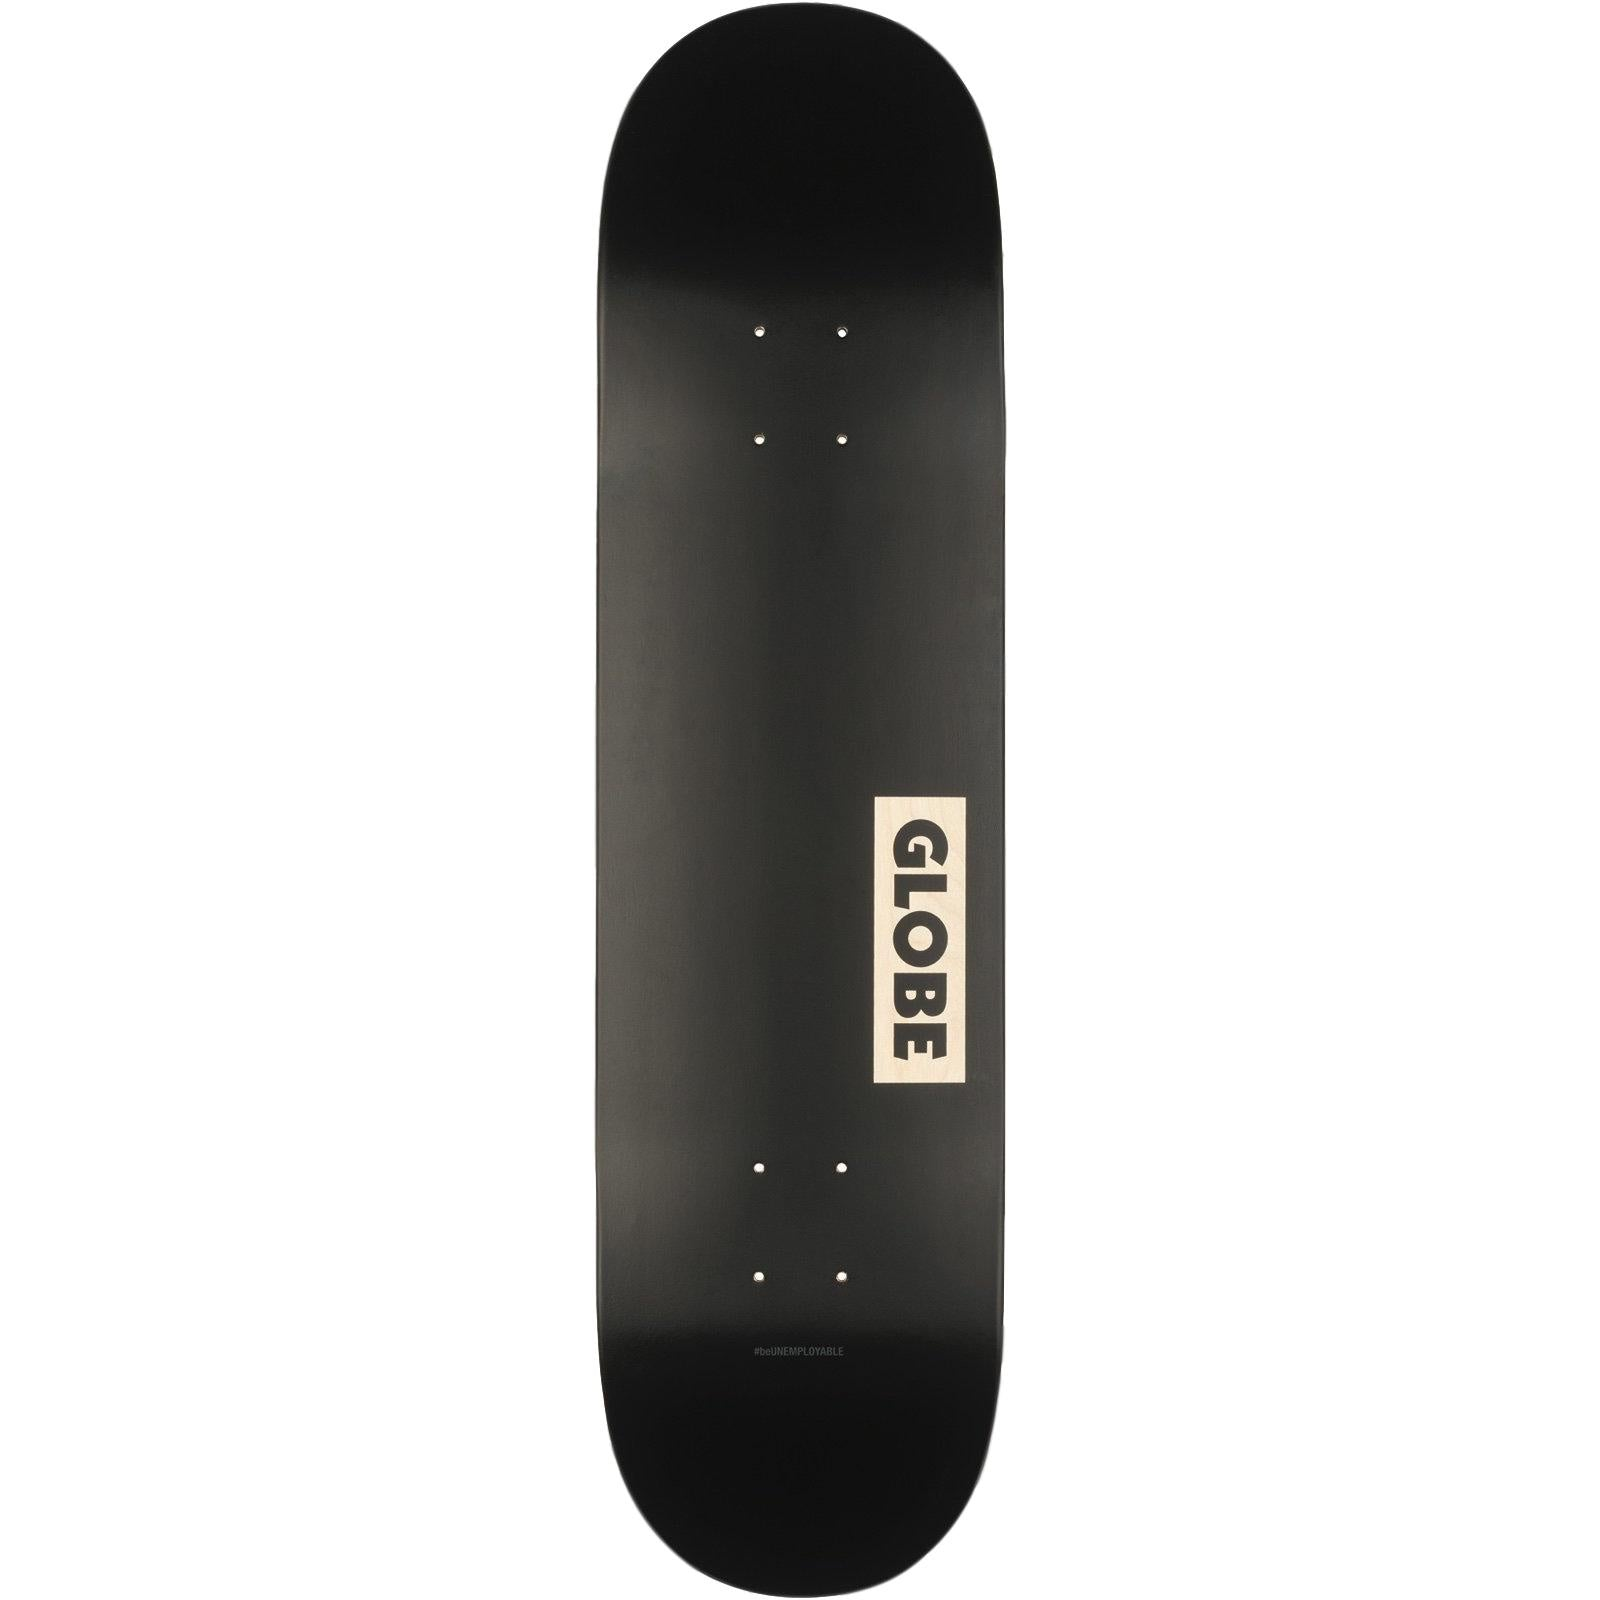 Globe Goodstock Skateboard Black 8.125""